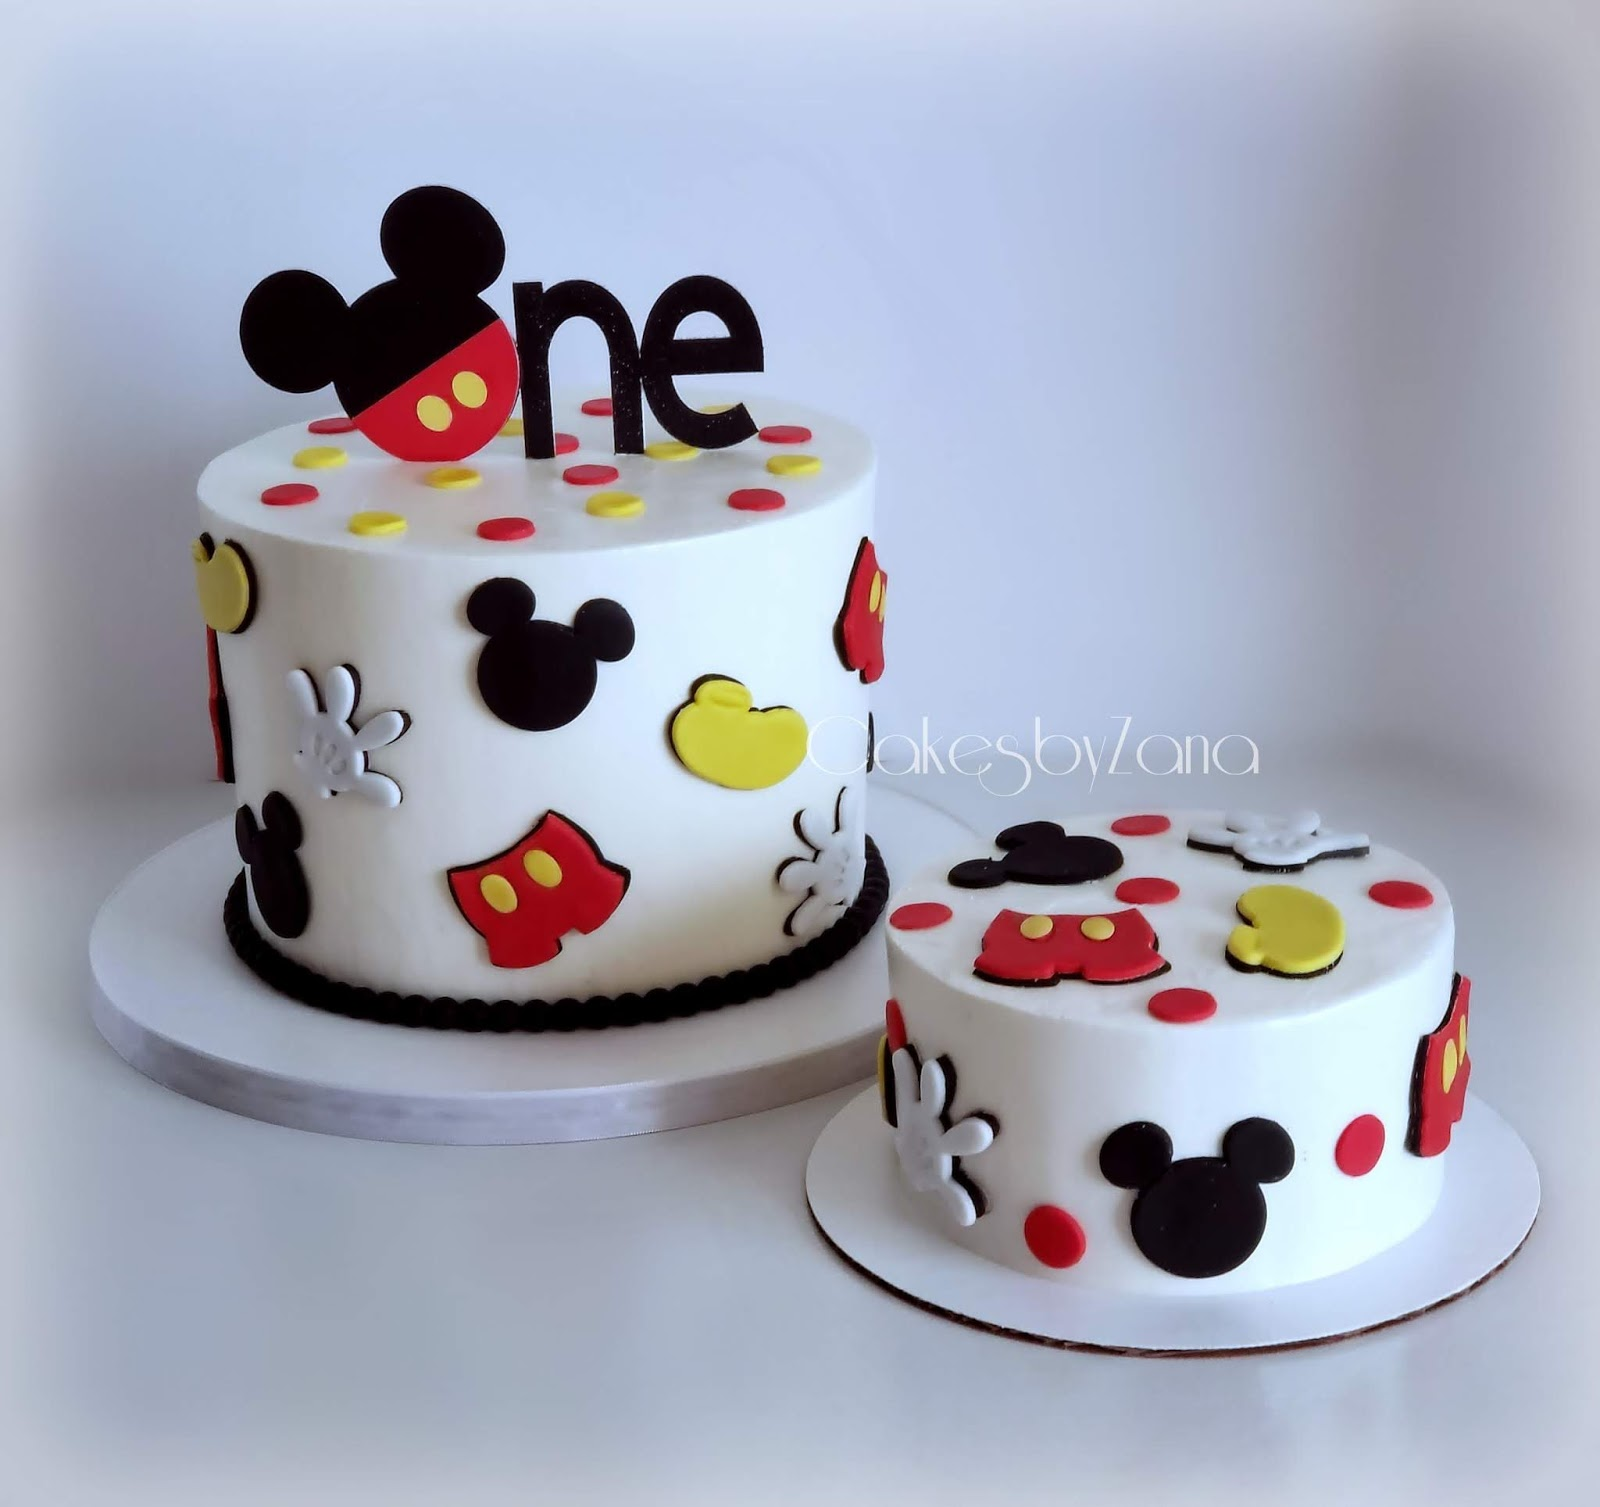 Stupendous Cakesbyzana Mickey Mouse 1St Birthday Cake Personalised Birthday Cards Bromeletsinfo